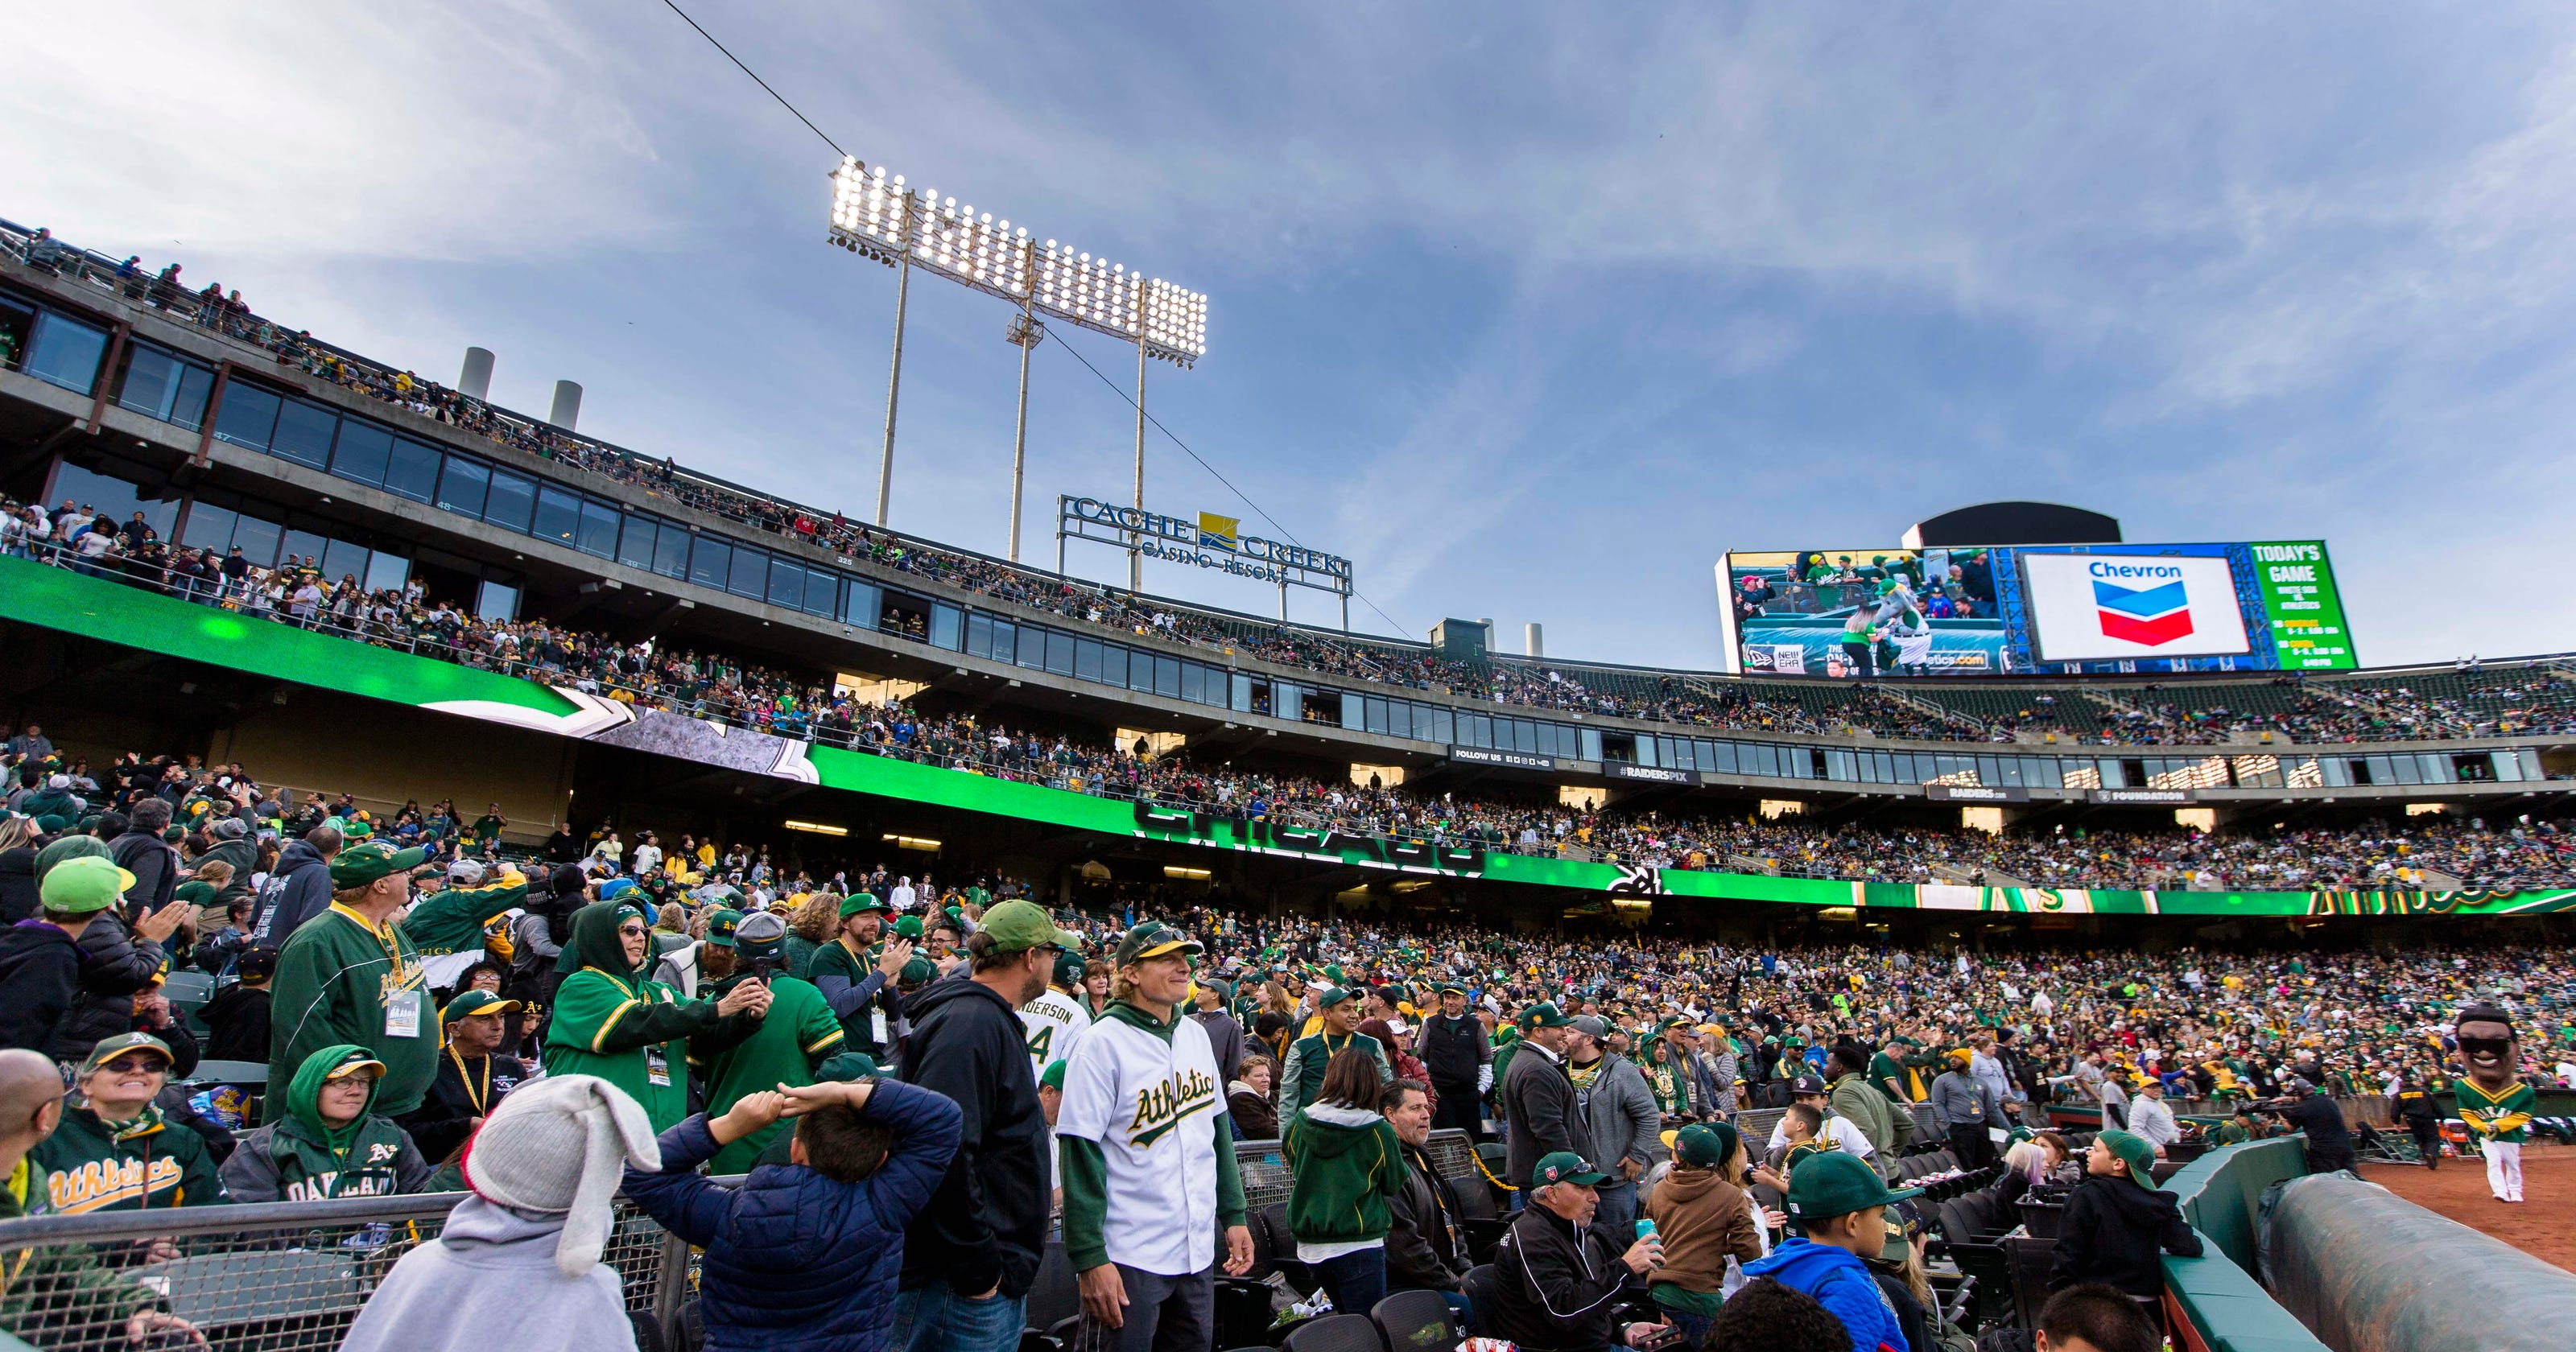 Free P Athletics Draw Near Out Crowd By Not Charging For Admission Vs White Sox